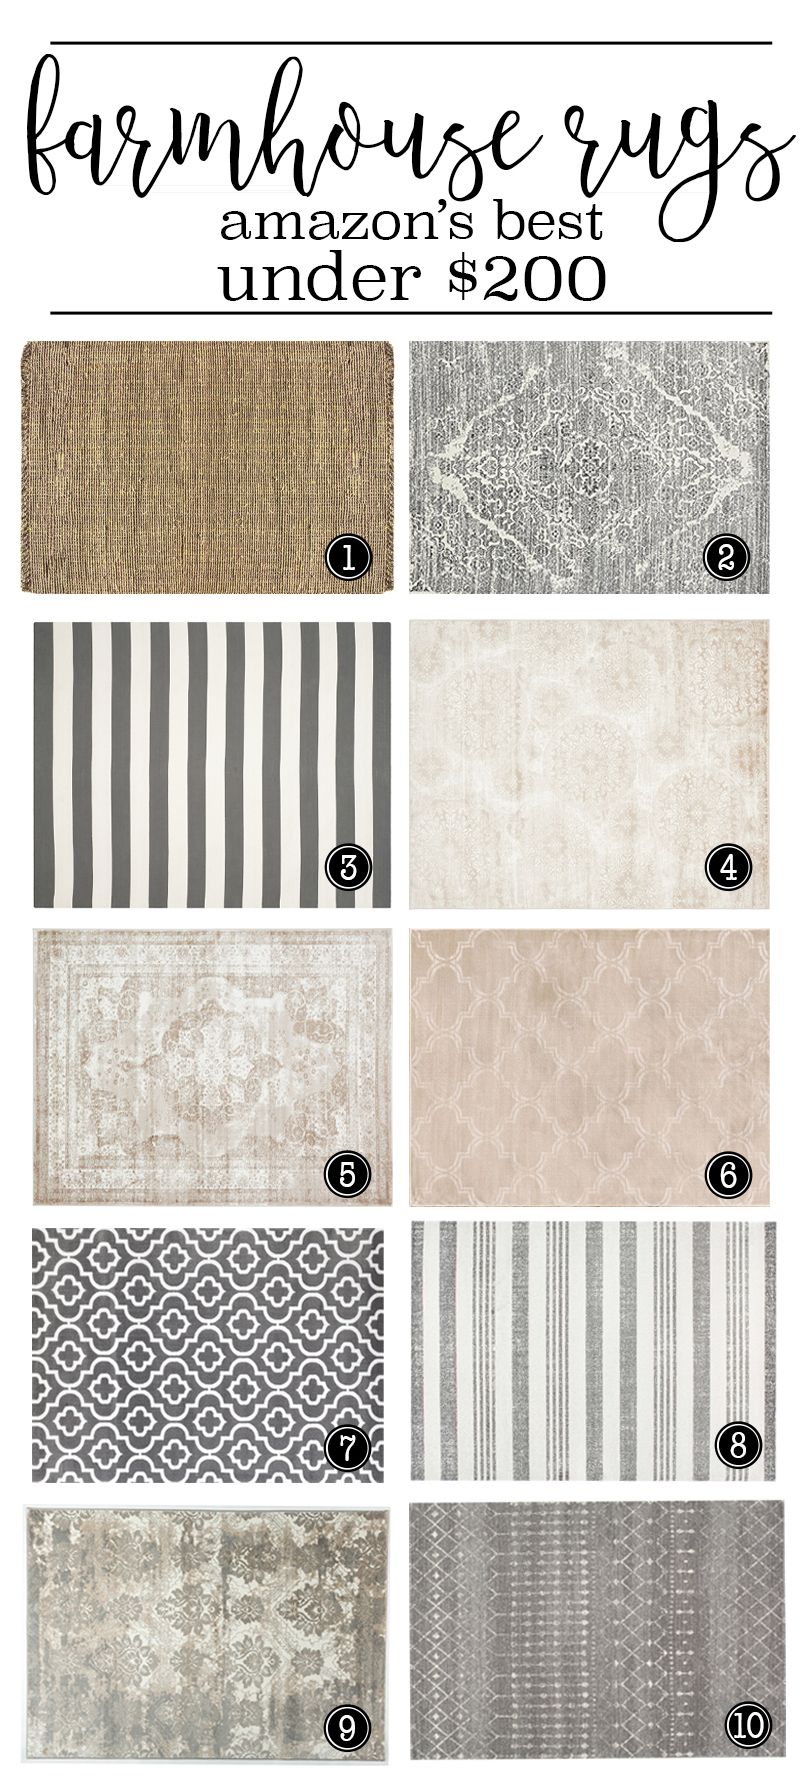 Where To Buy The Best Farmhouse Rugs Under 200